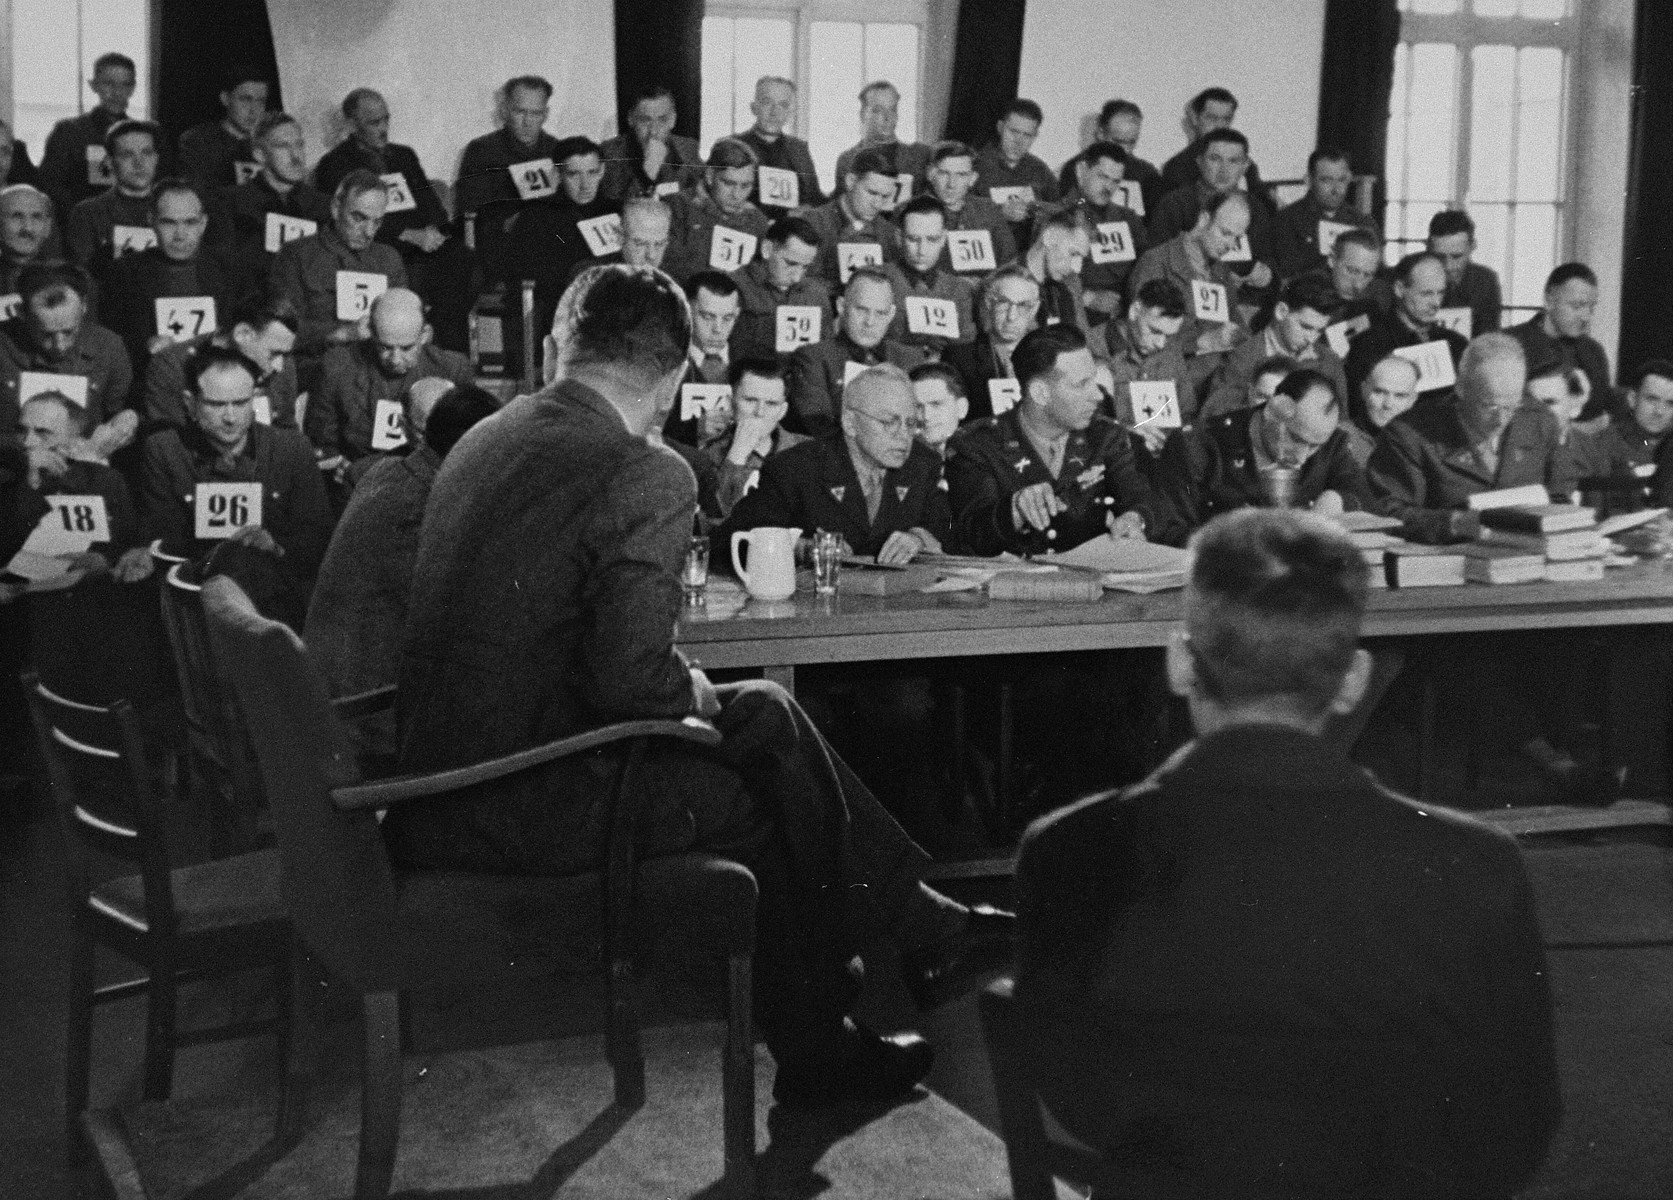 A witness testifies for the prosecution at the trial of 61 former camp personnel and prisoners from Mauthausen.